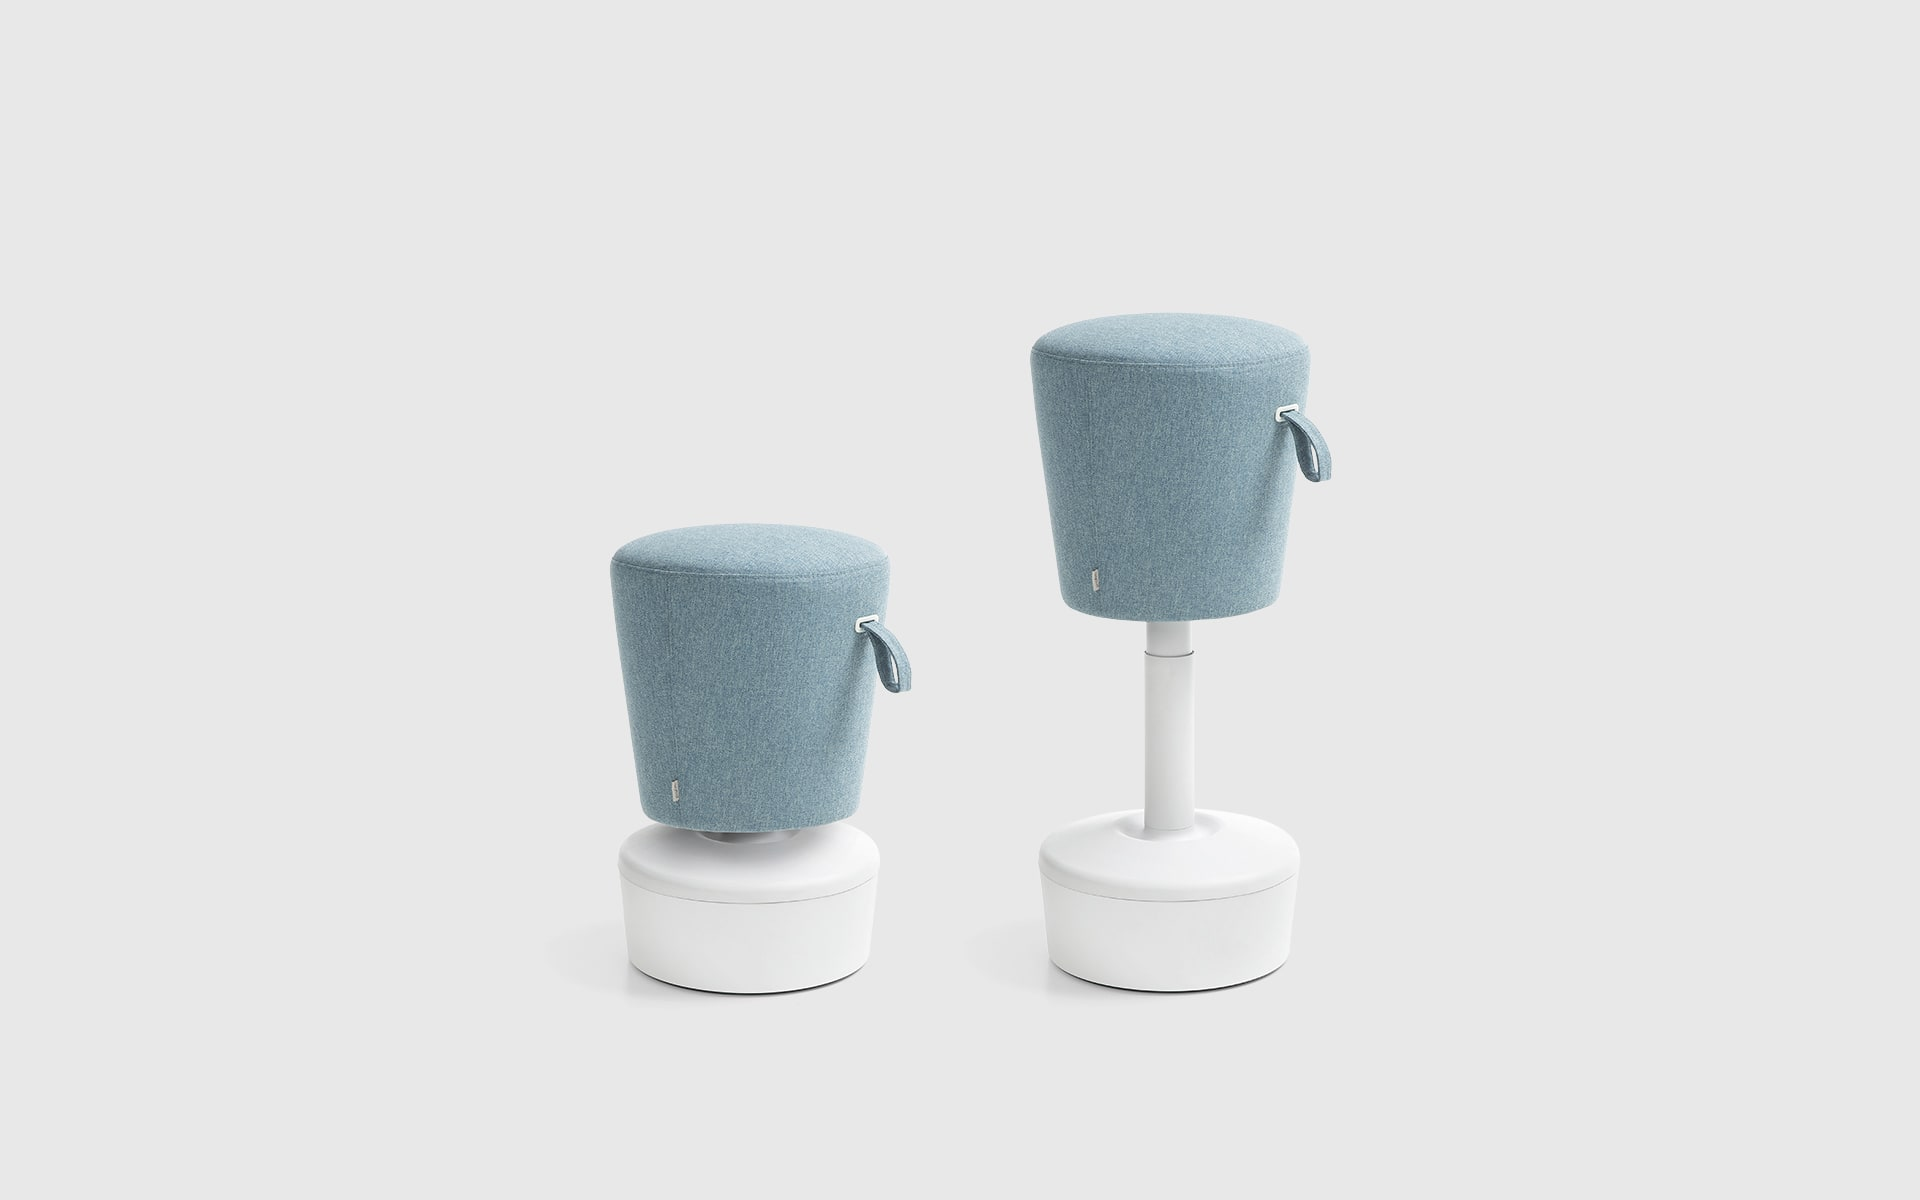 Profim Mickey stools by ITO Design in white and light blue